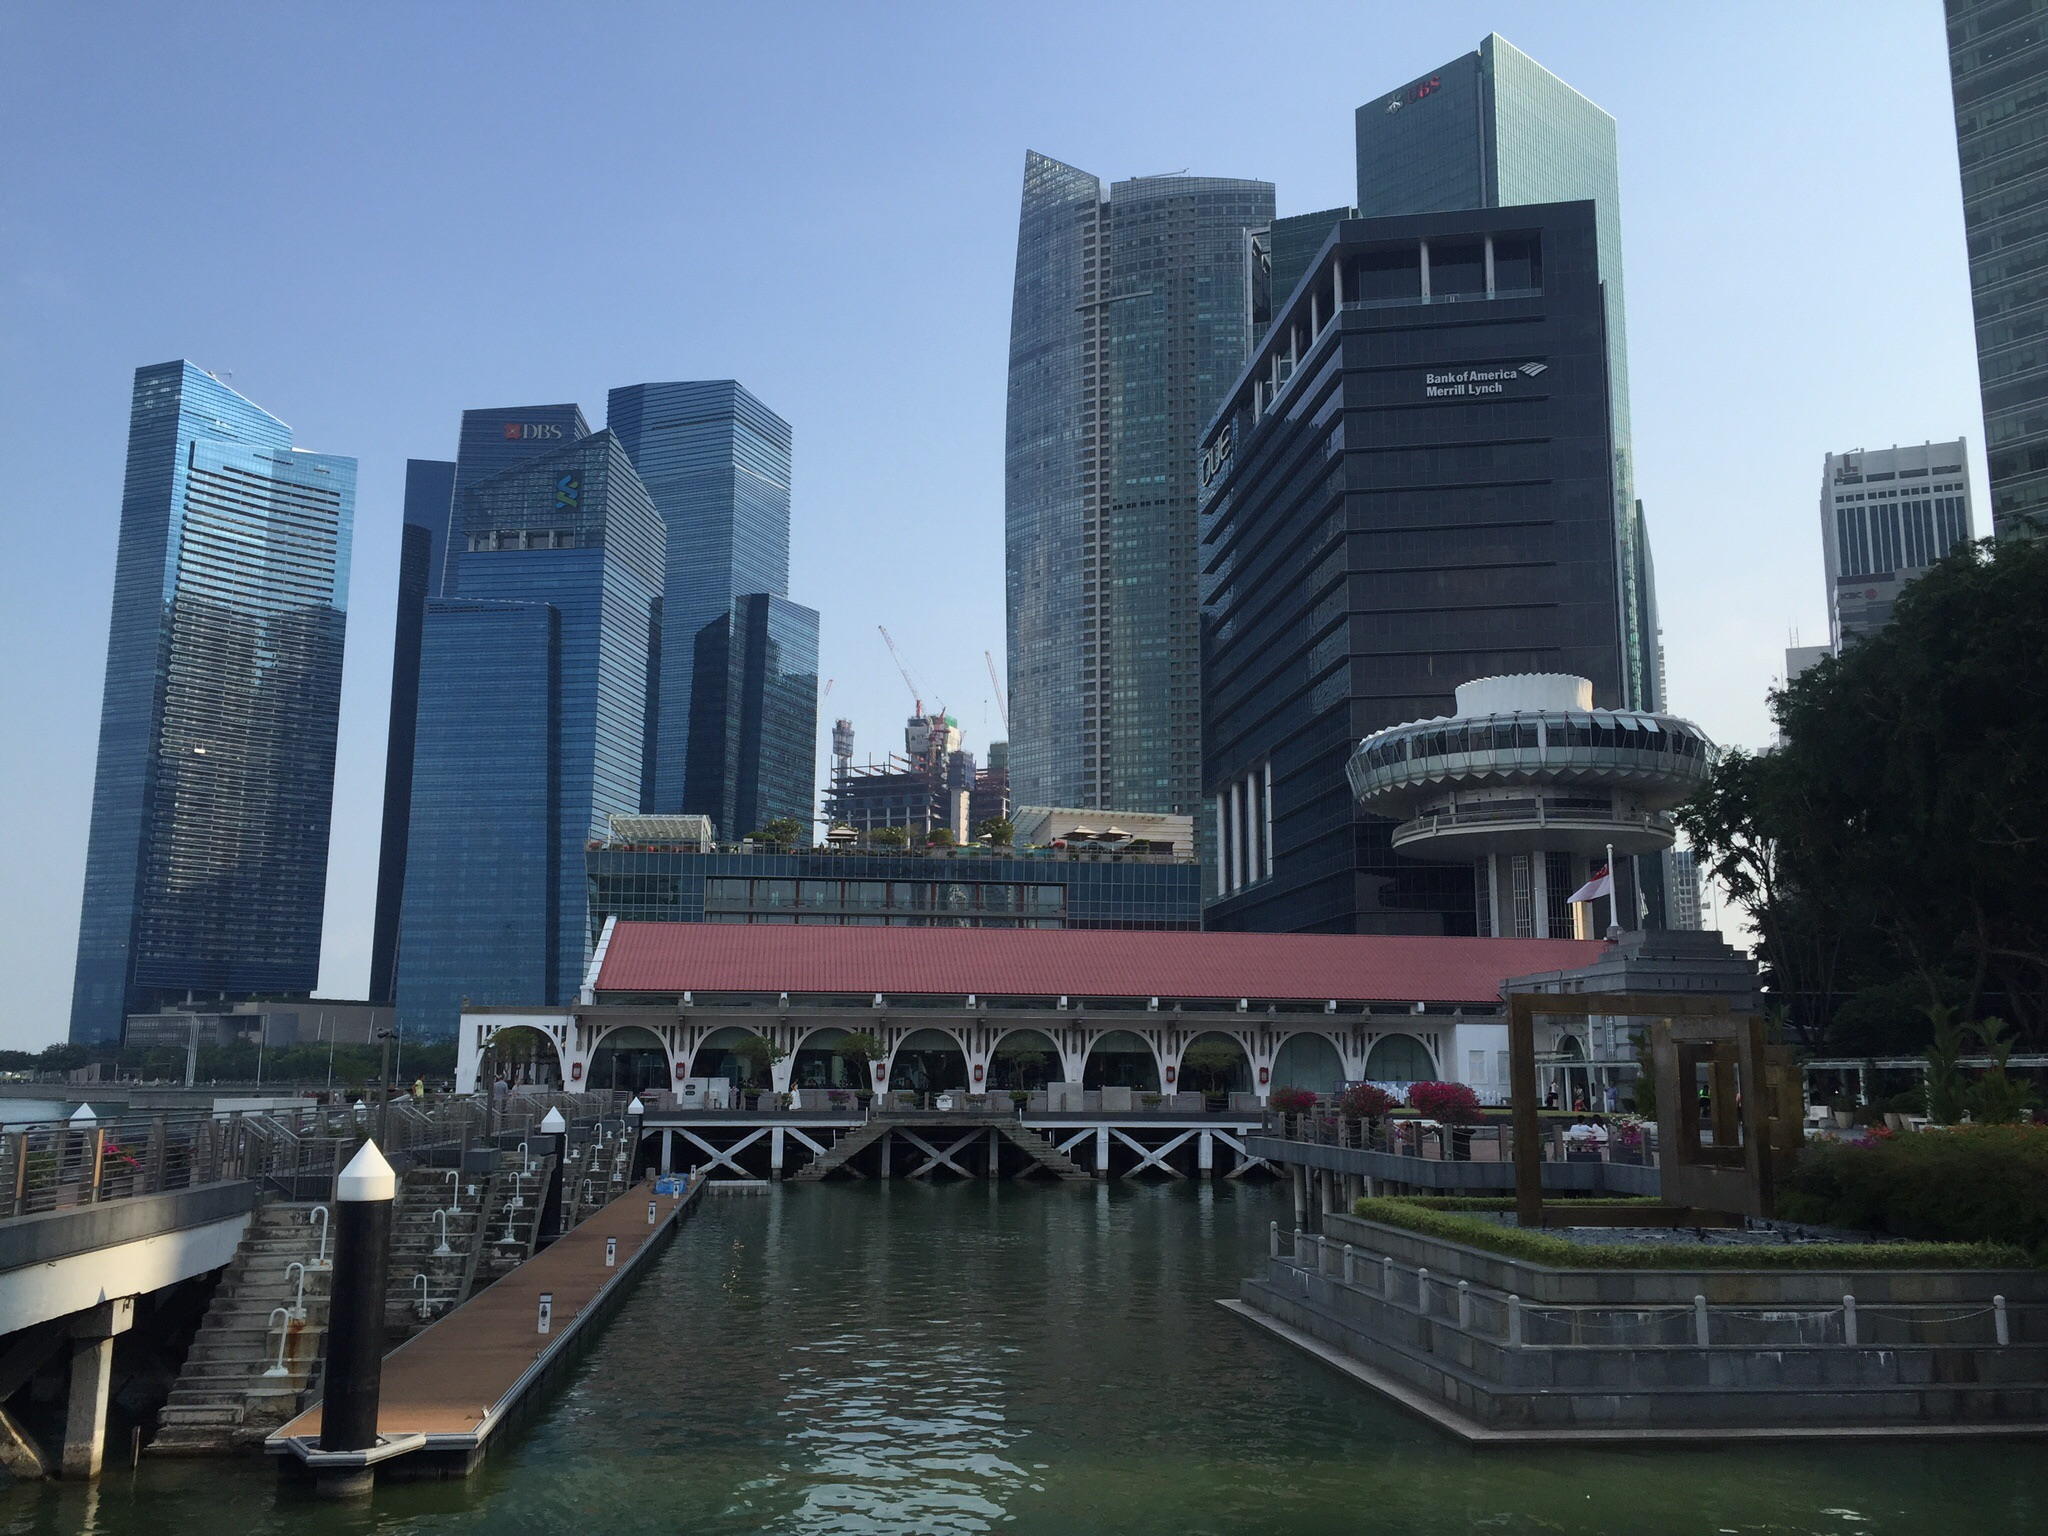 Singapore Hotel in the foreground and Financial District in the background.